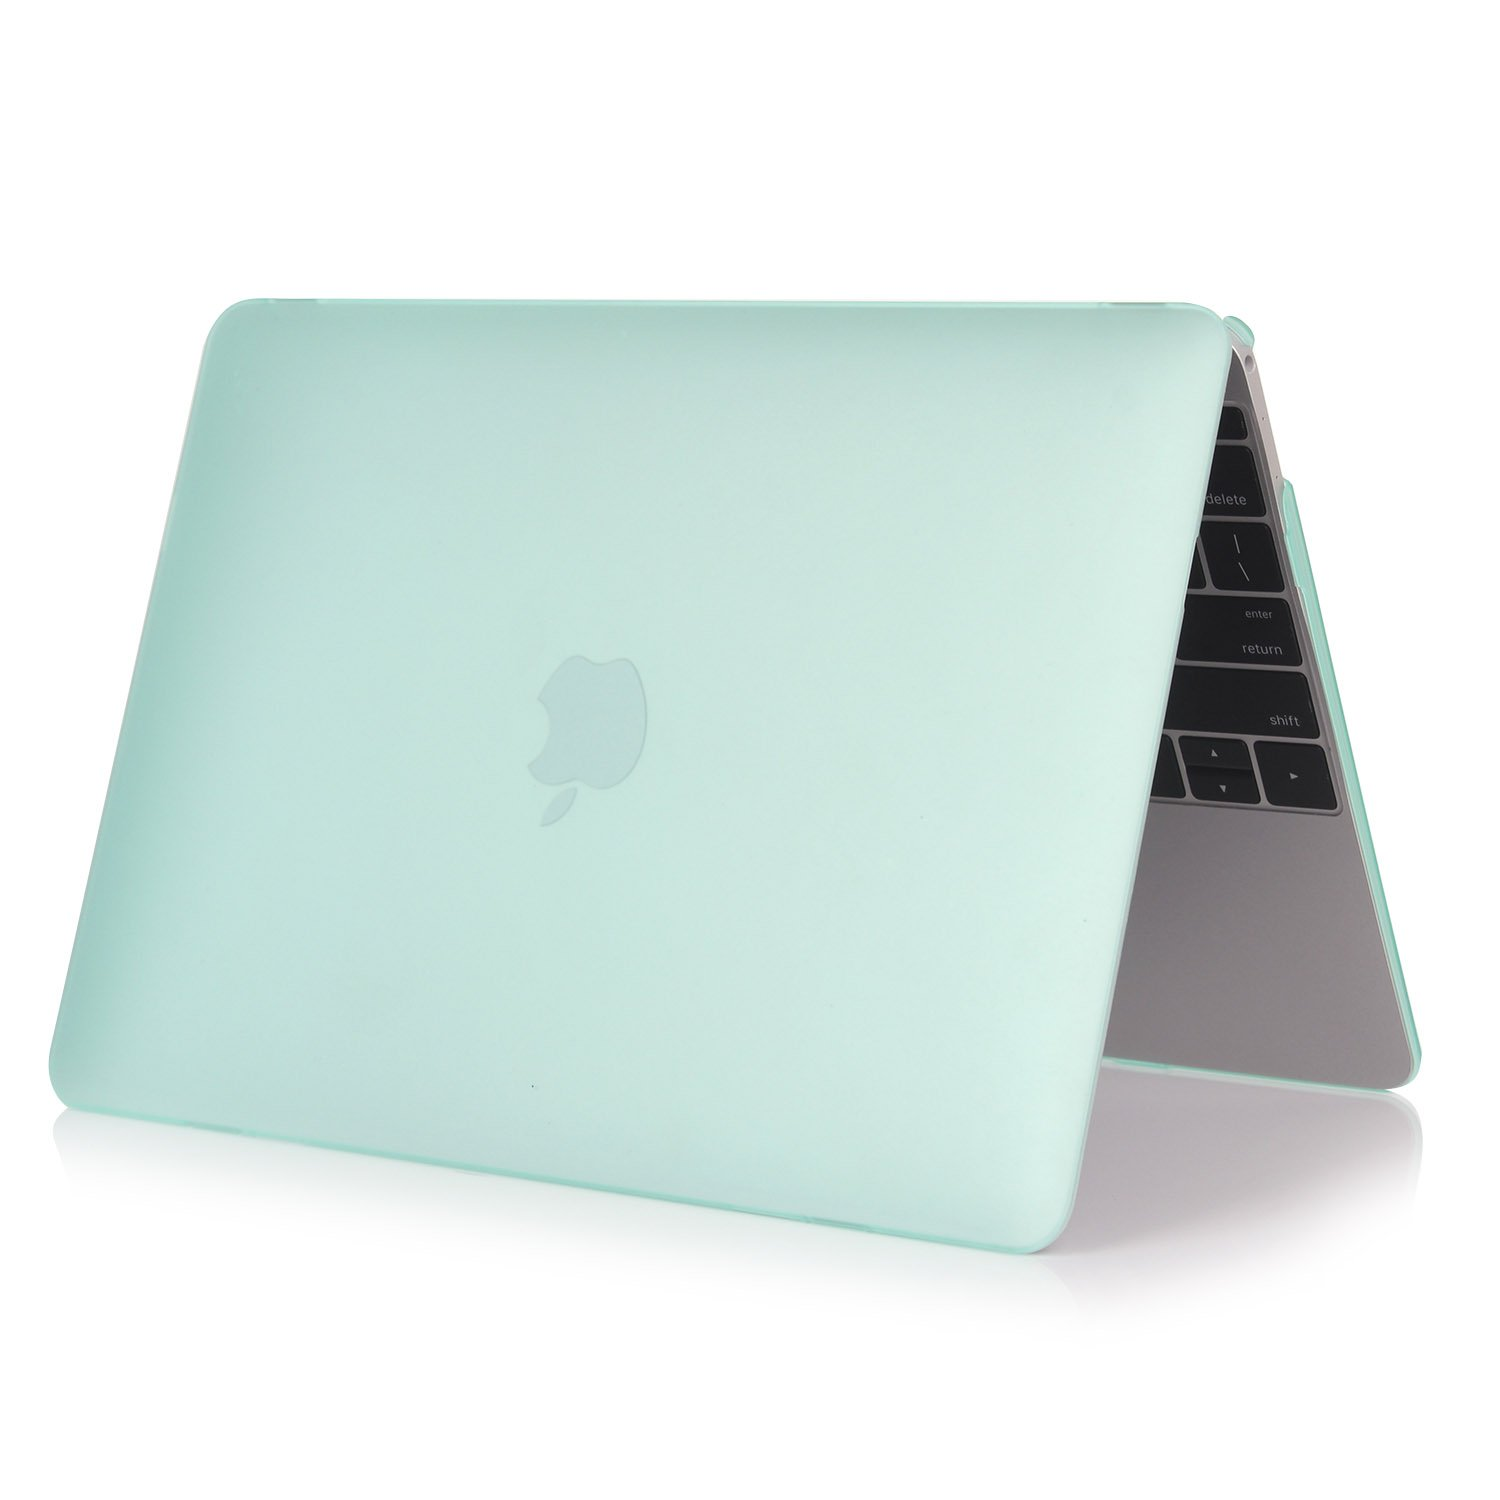 "13.3"" MOSISO MINT Matte Case for MacBook Air Laptop 9 COLORS FAST FREE SHIPPING USA"